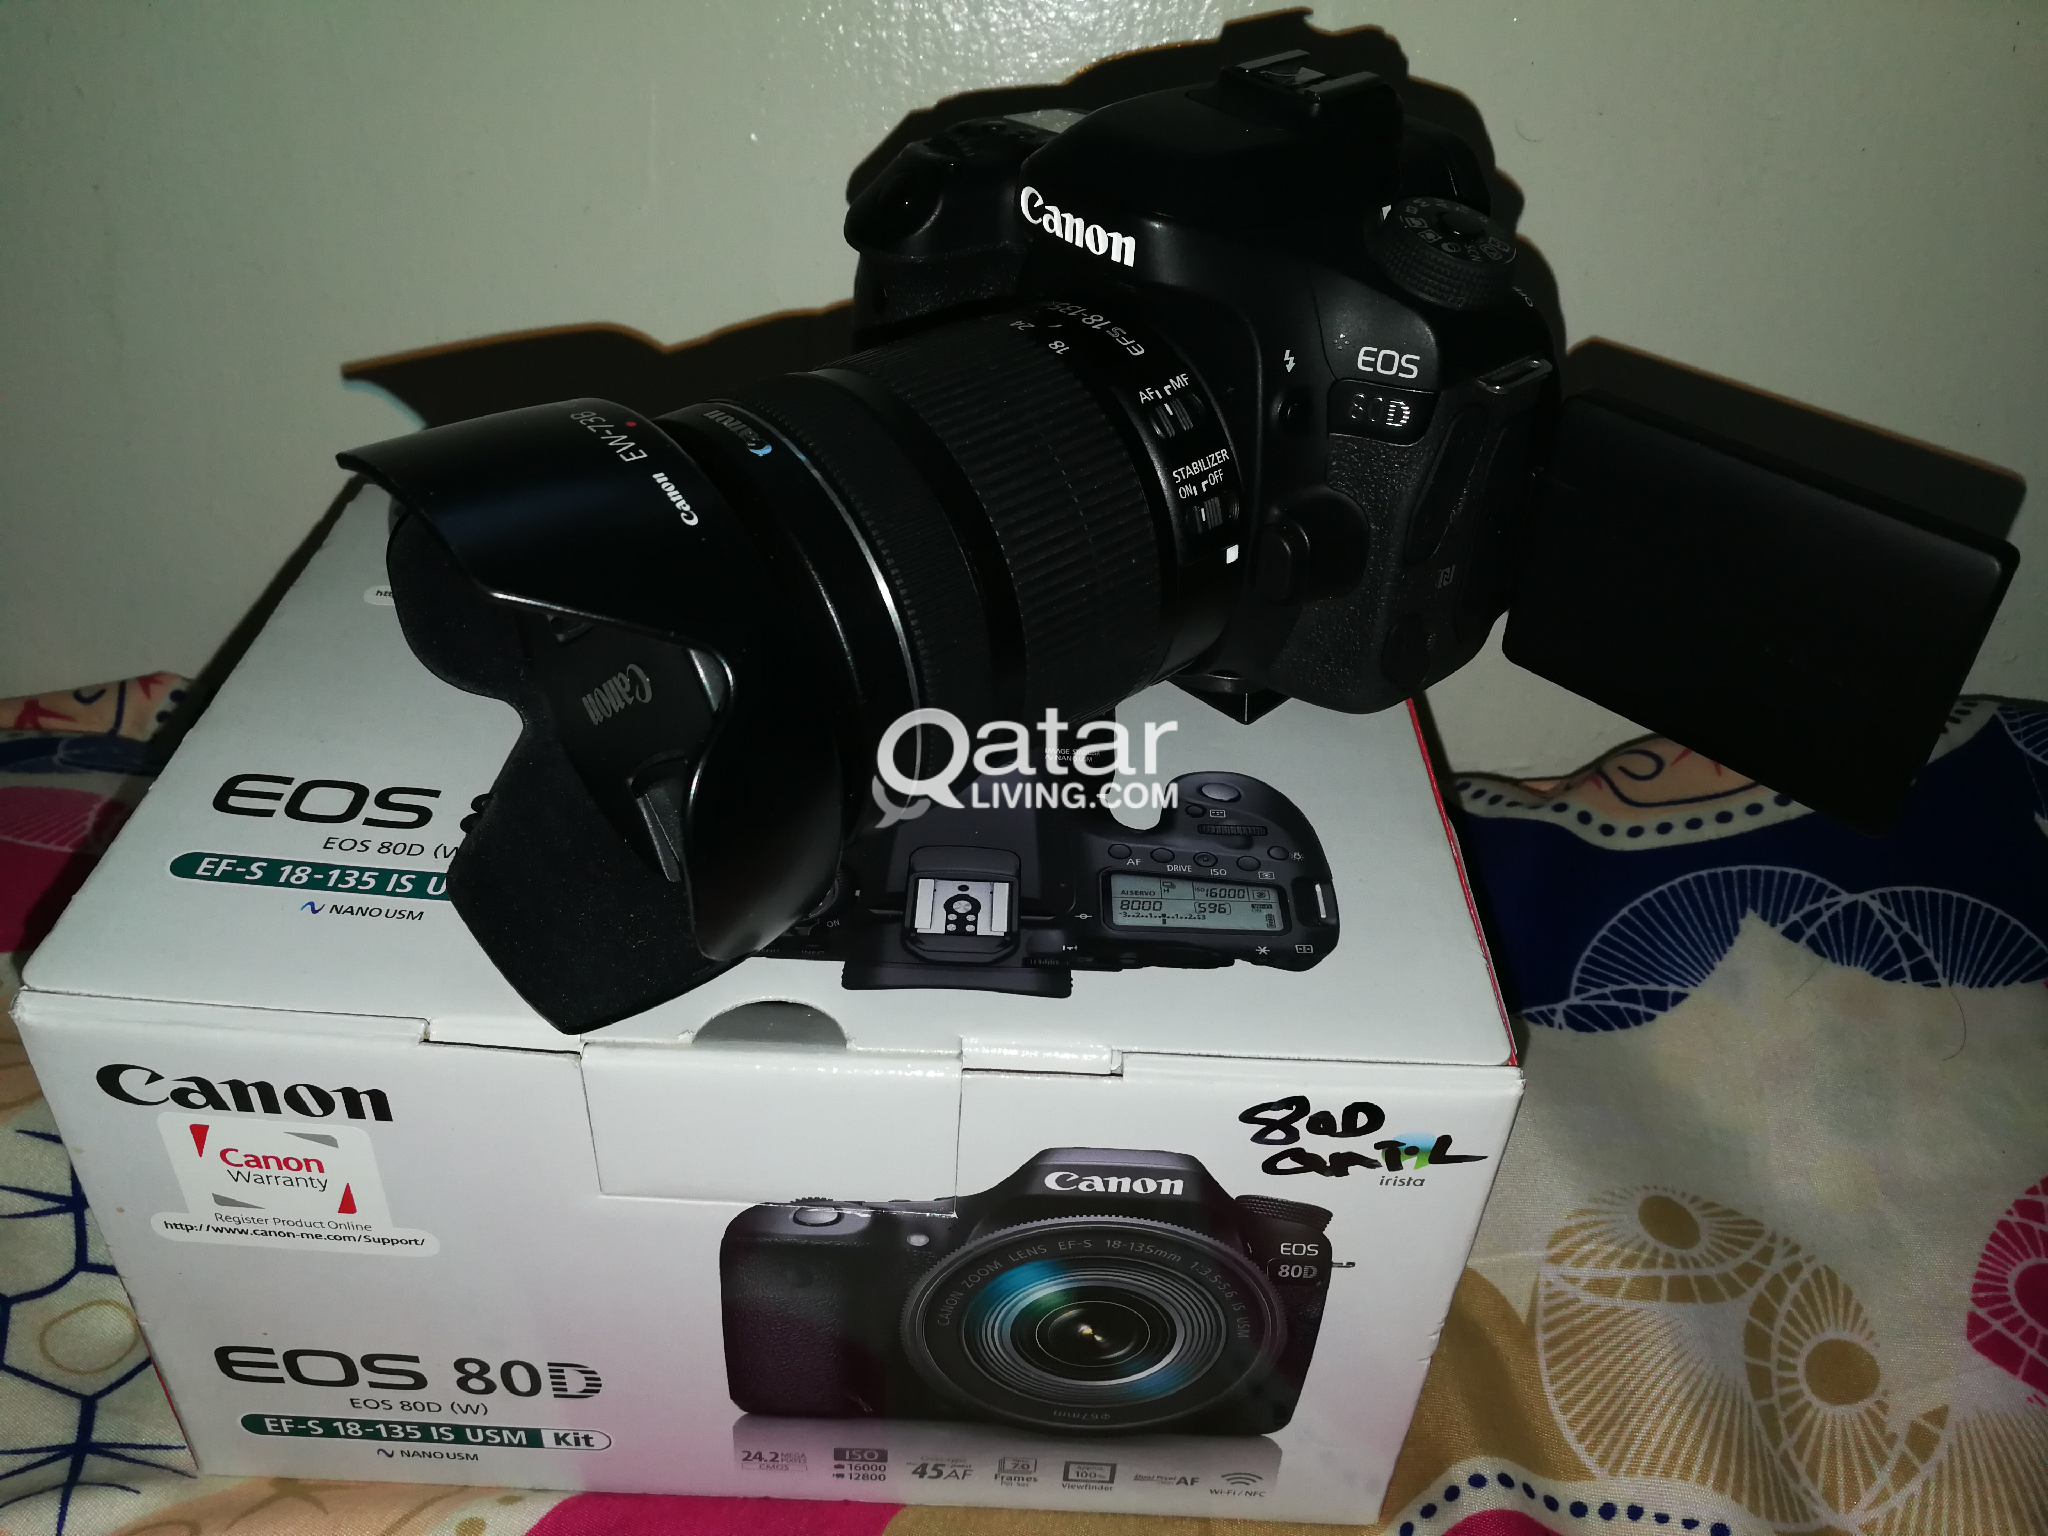 CANON EOS 80D WITH 18-135 IS STM LENS   Qatar Living